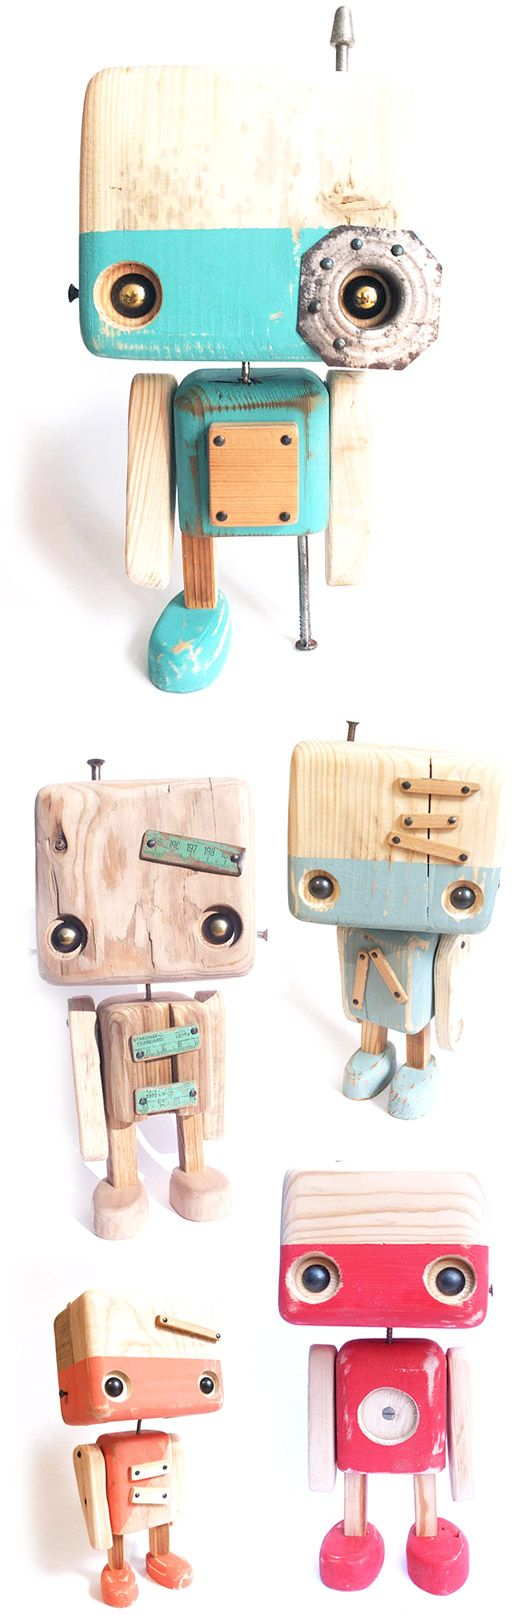 Quirky Wooden Robots by Collectif 56P | kidindependent